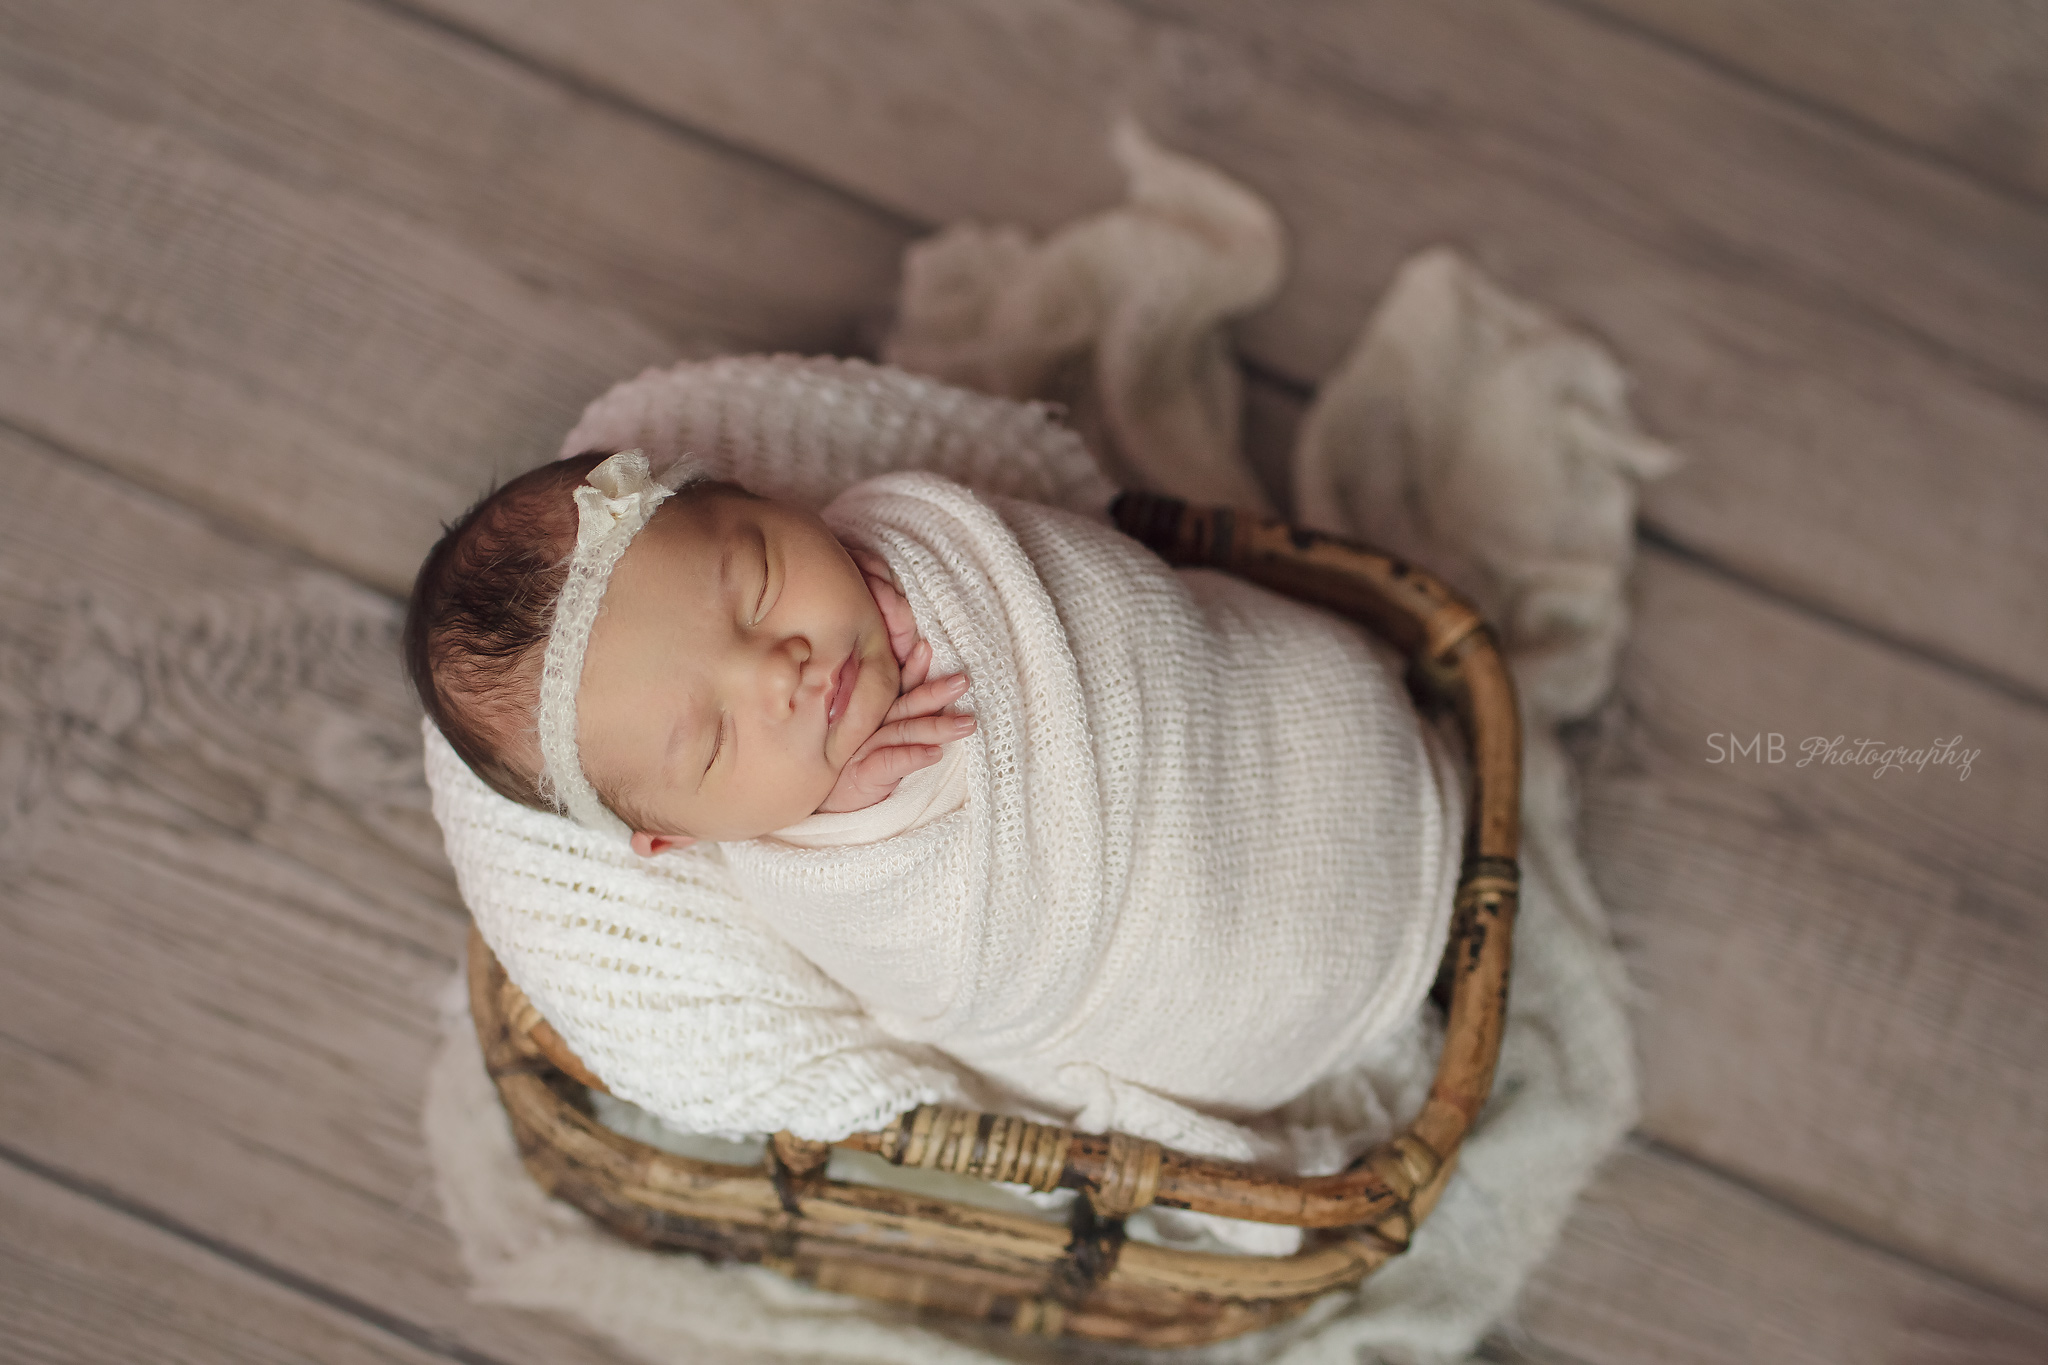 New baby girl wrapped in basket